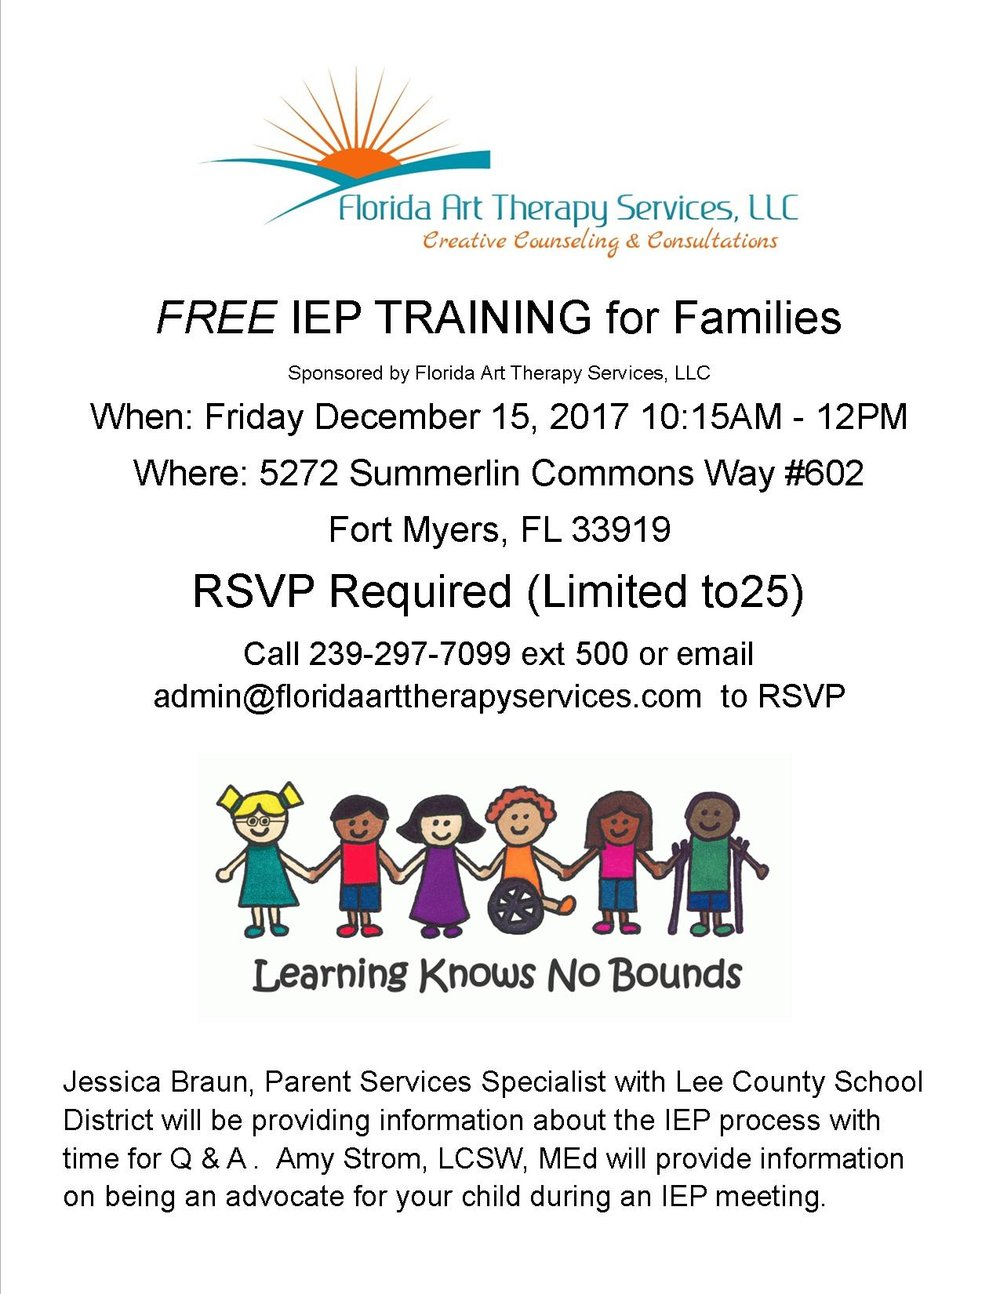 IEP Training Flyer.jpg